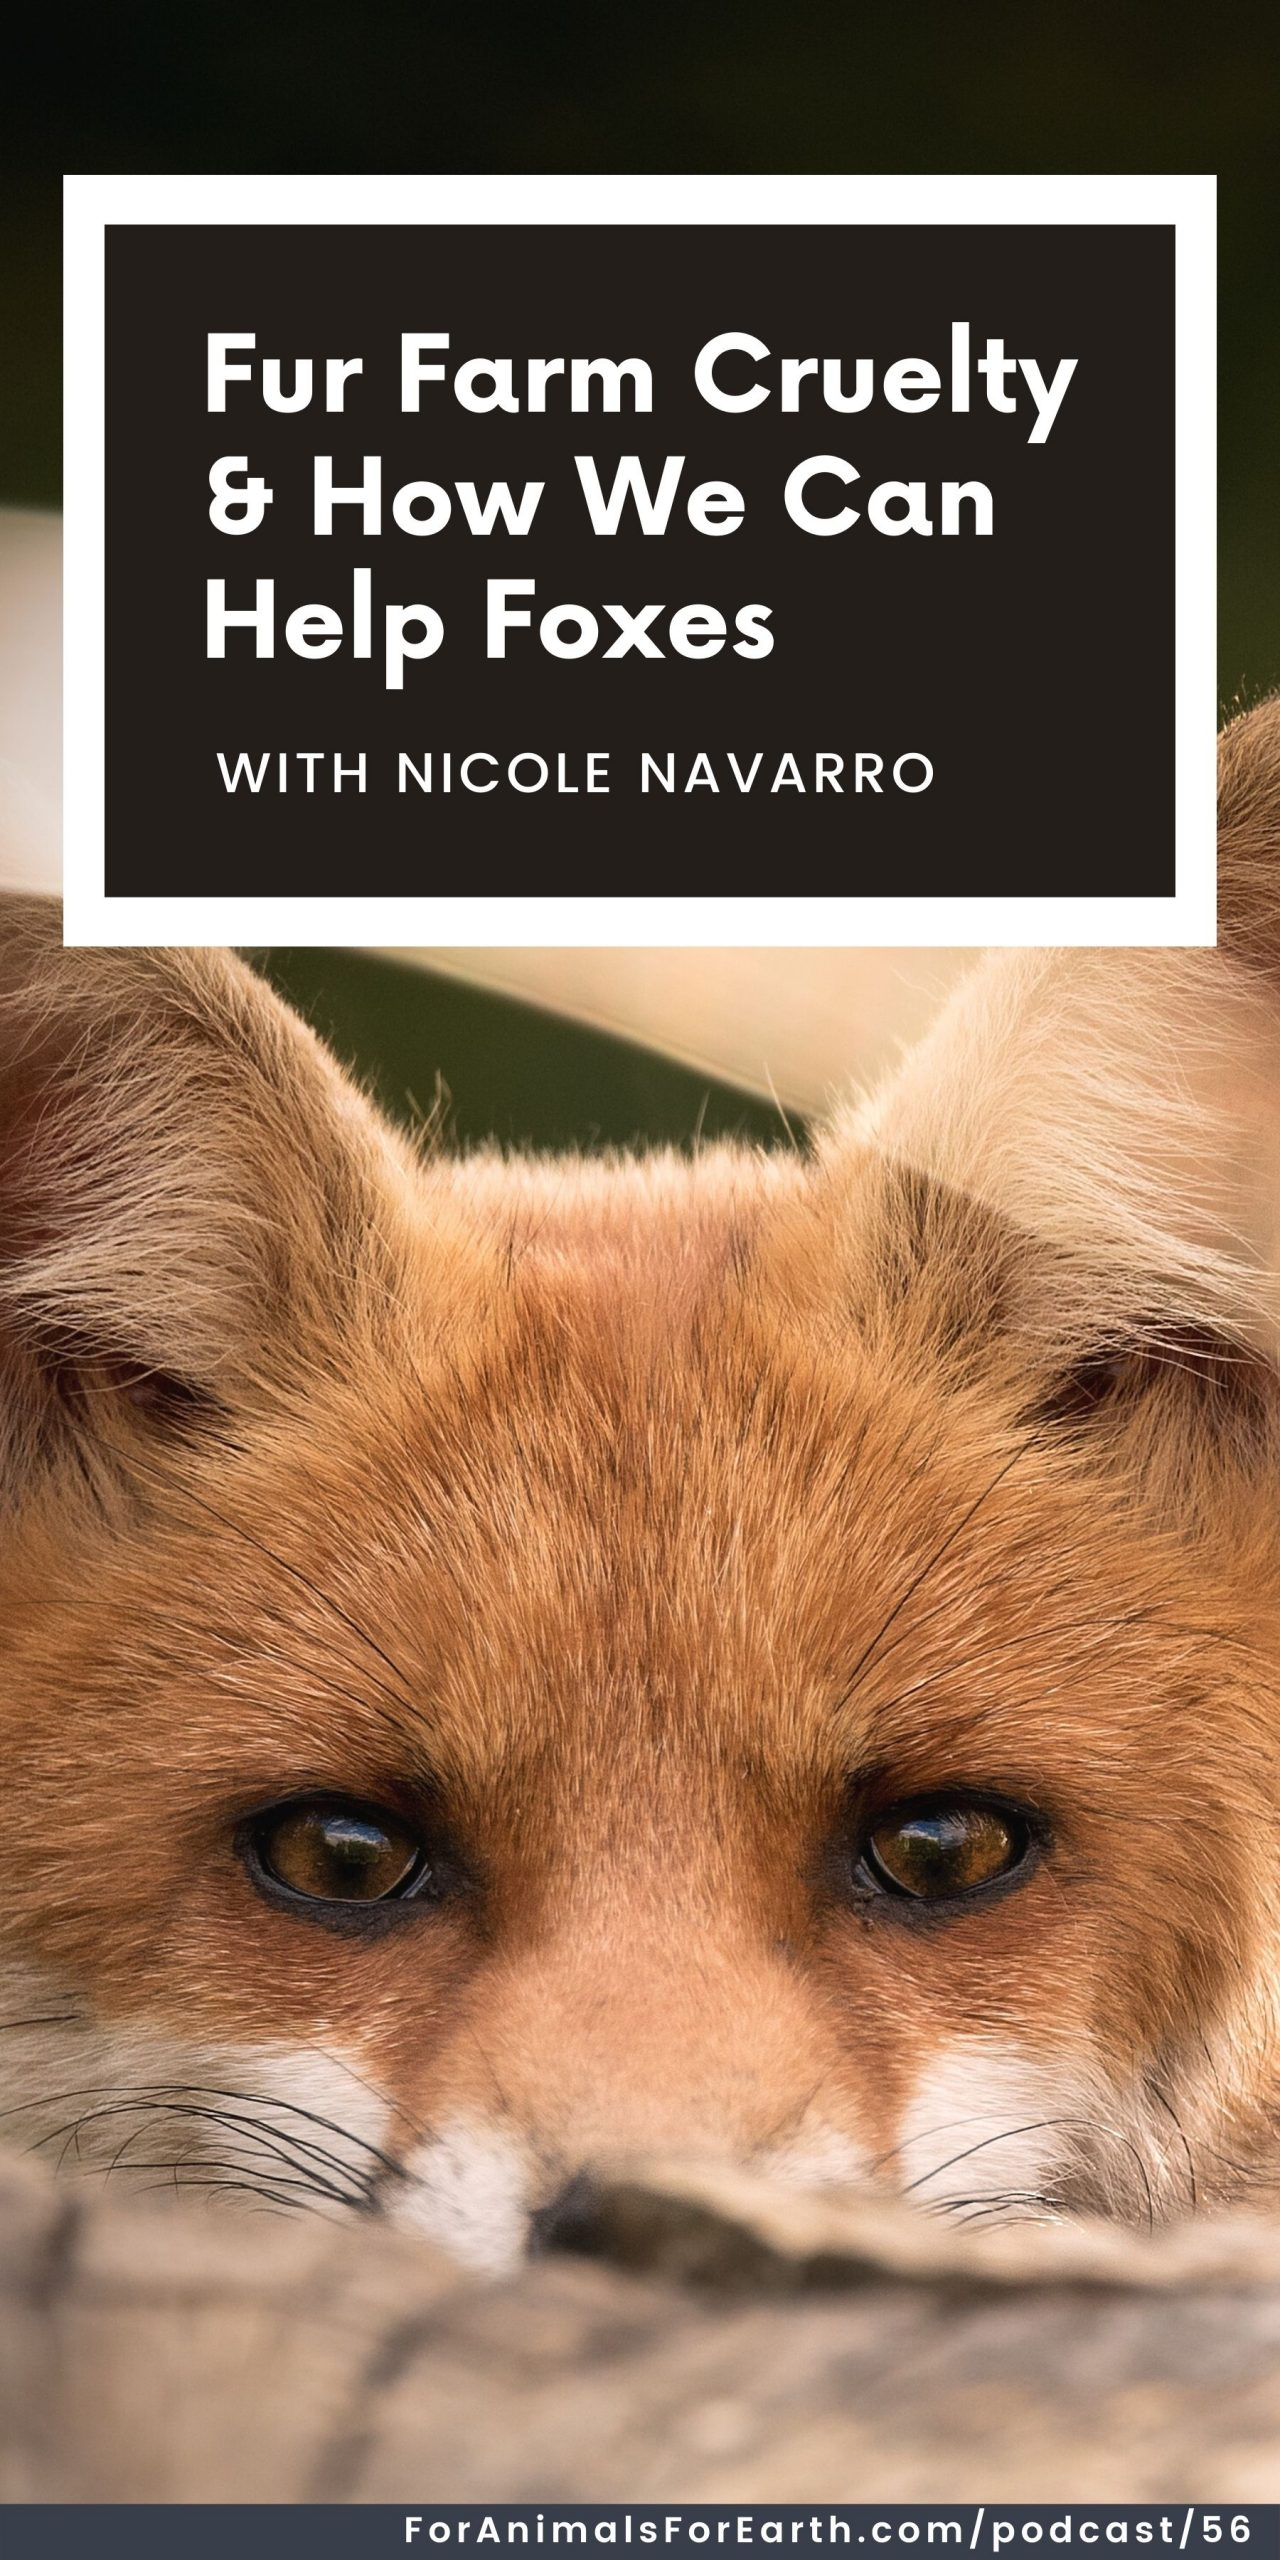 Did you know that fur farms are not only operating, but are alive and thriving in the United States? Nicole from Pawsitive Beginnings saves foxes from fur farms and joined me on the For Animals. For Earth. show to tell us how we can help.